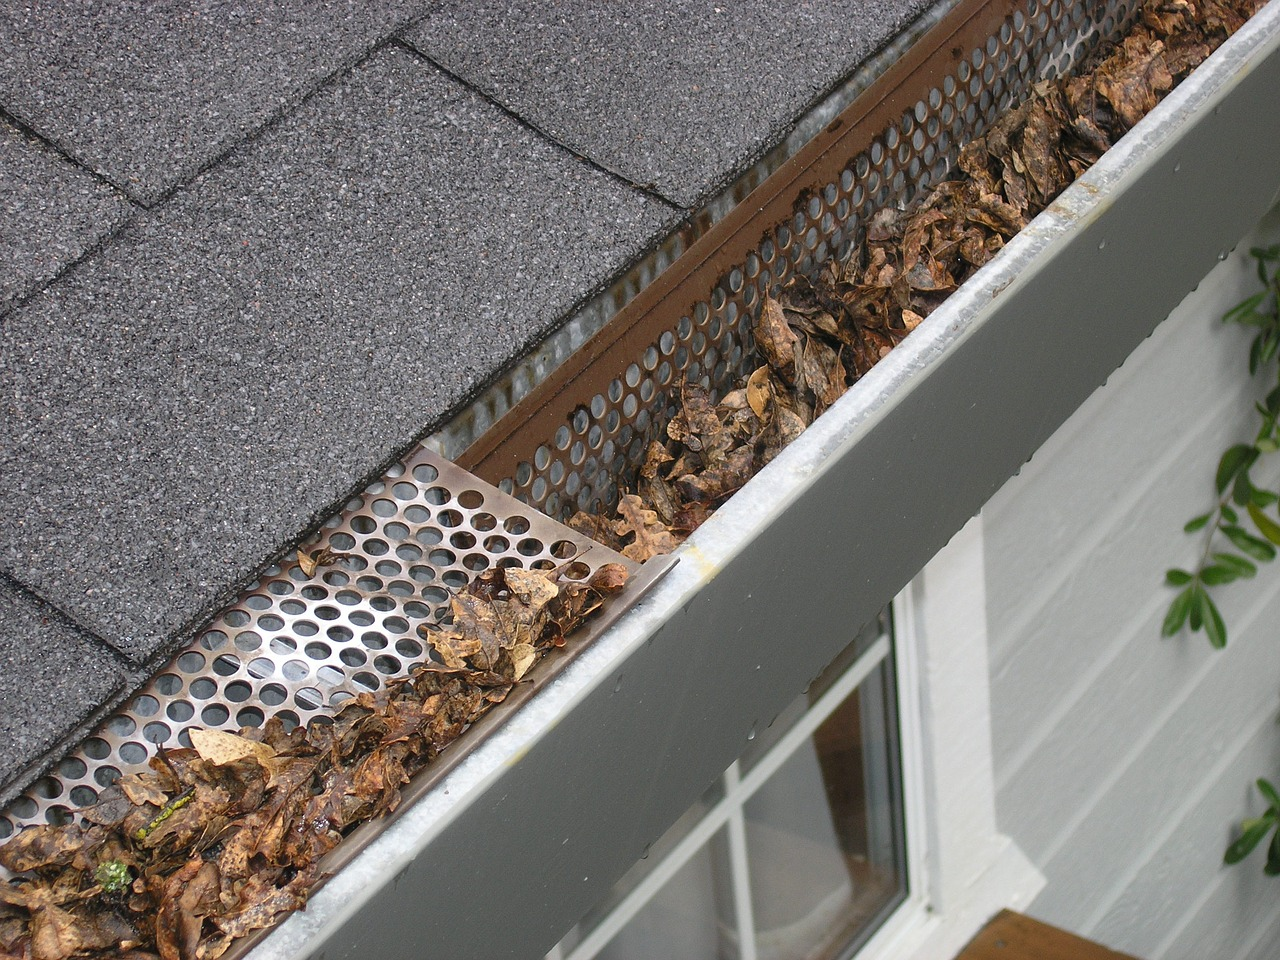 cleaning gutters in fall